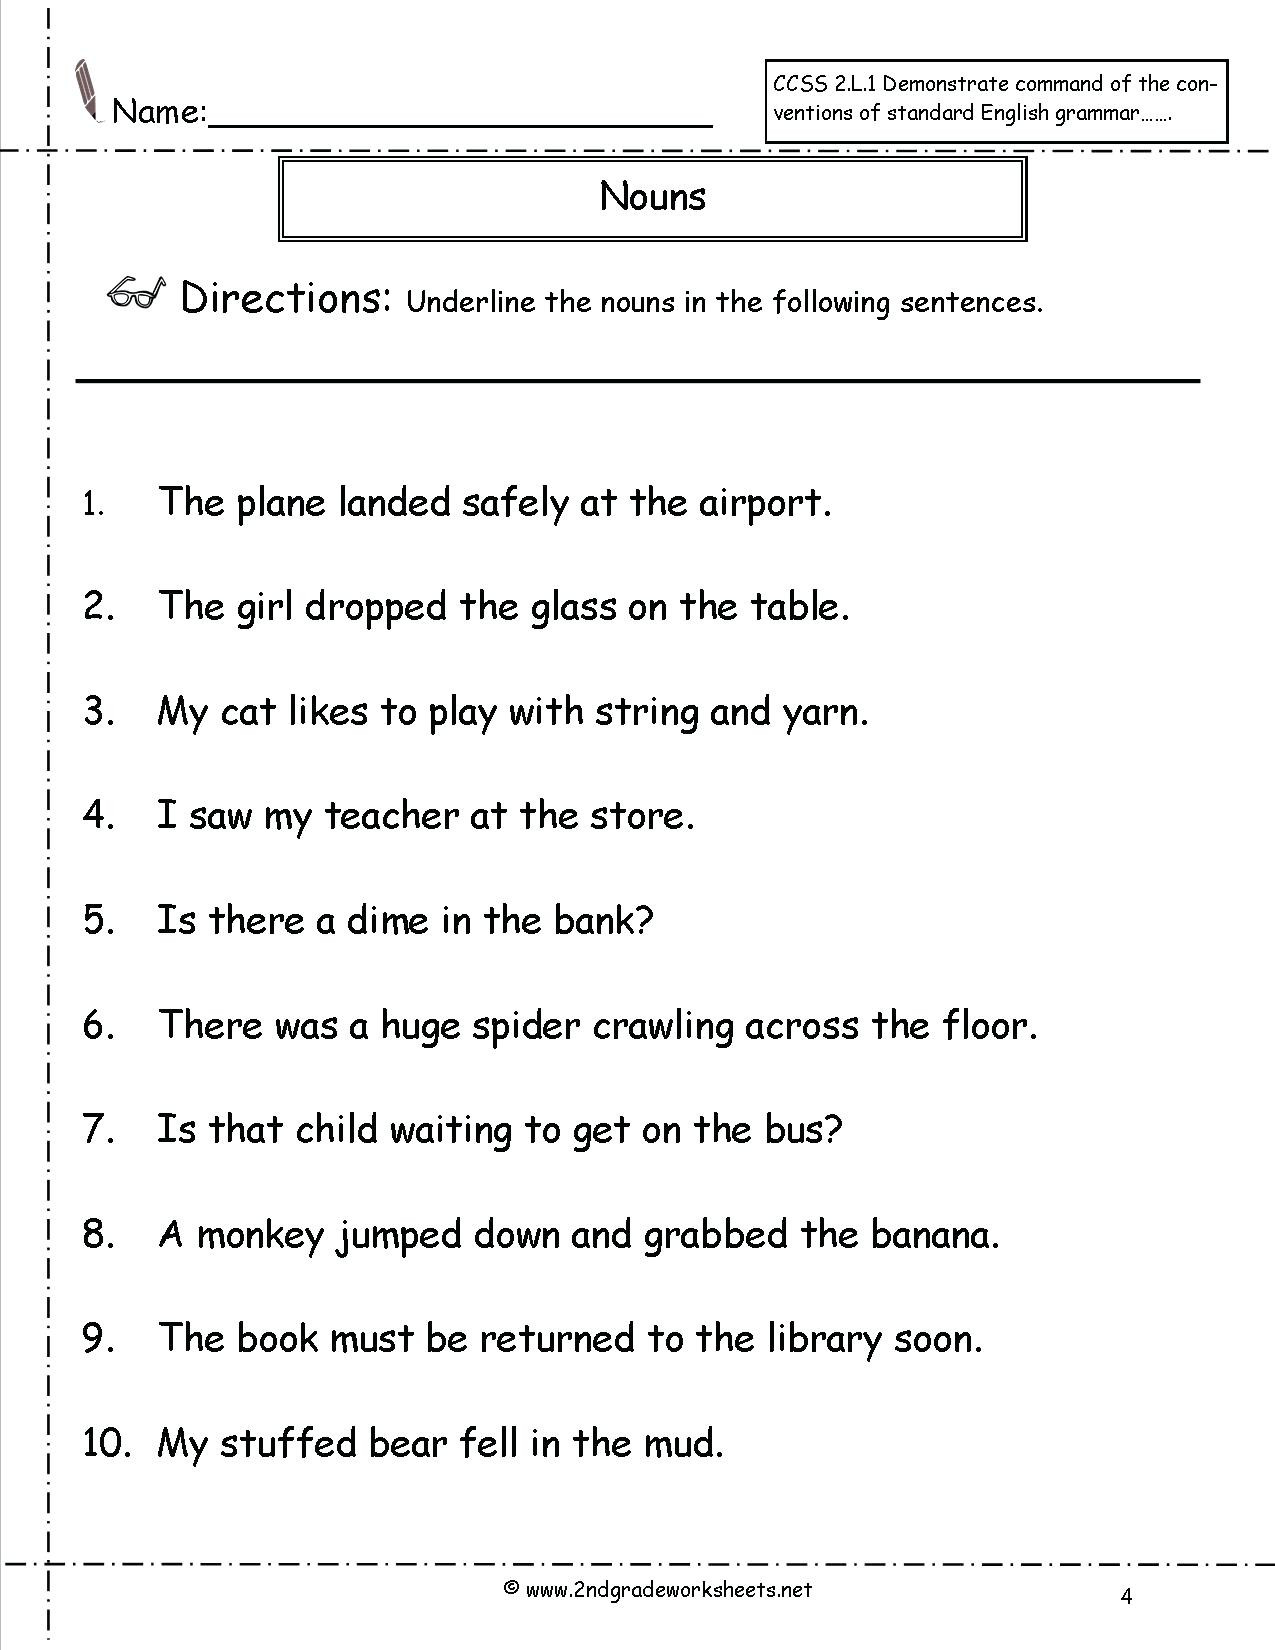 4th Grade Grammar Worksheets Pdf Noun Worksheet Nouns Worksheet Grammar Worksheets for Grade